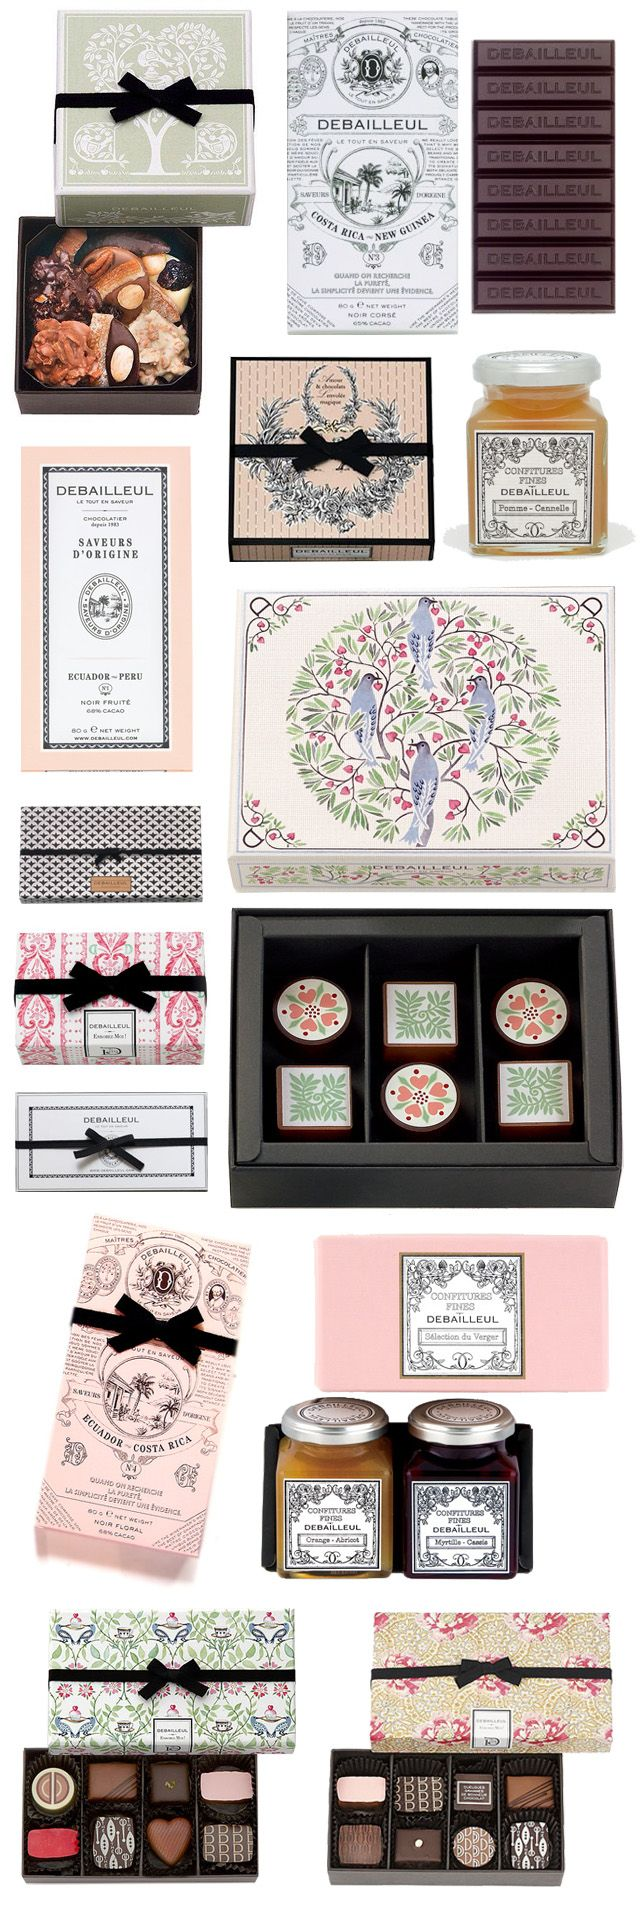 Debailleul gorgeous collection of illustrated packaging PD